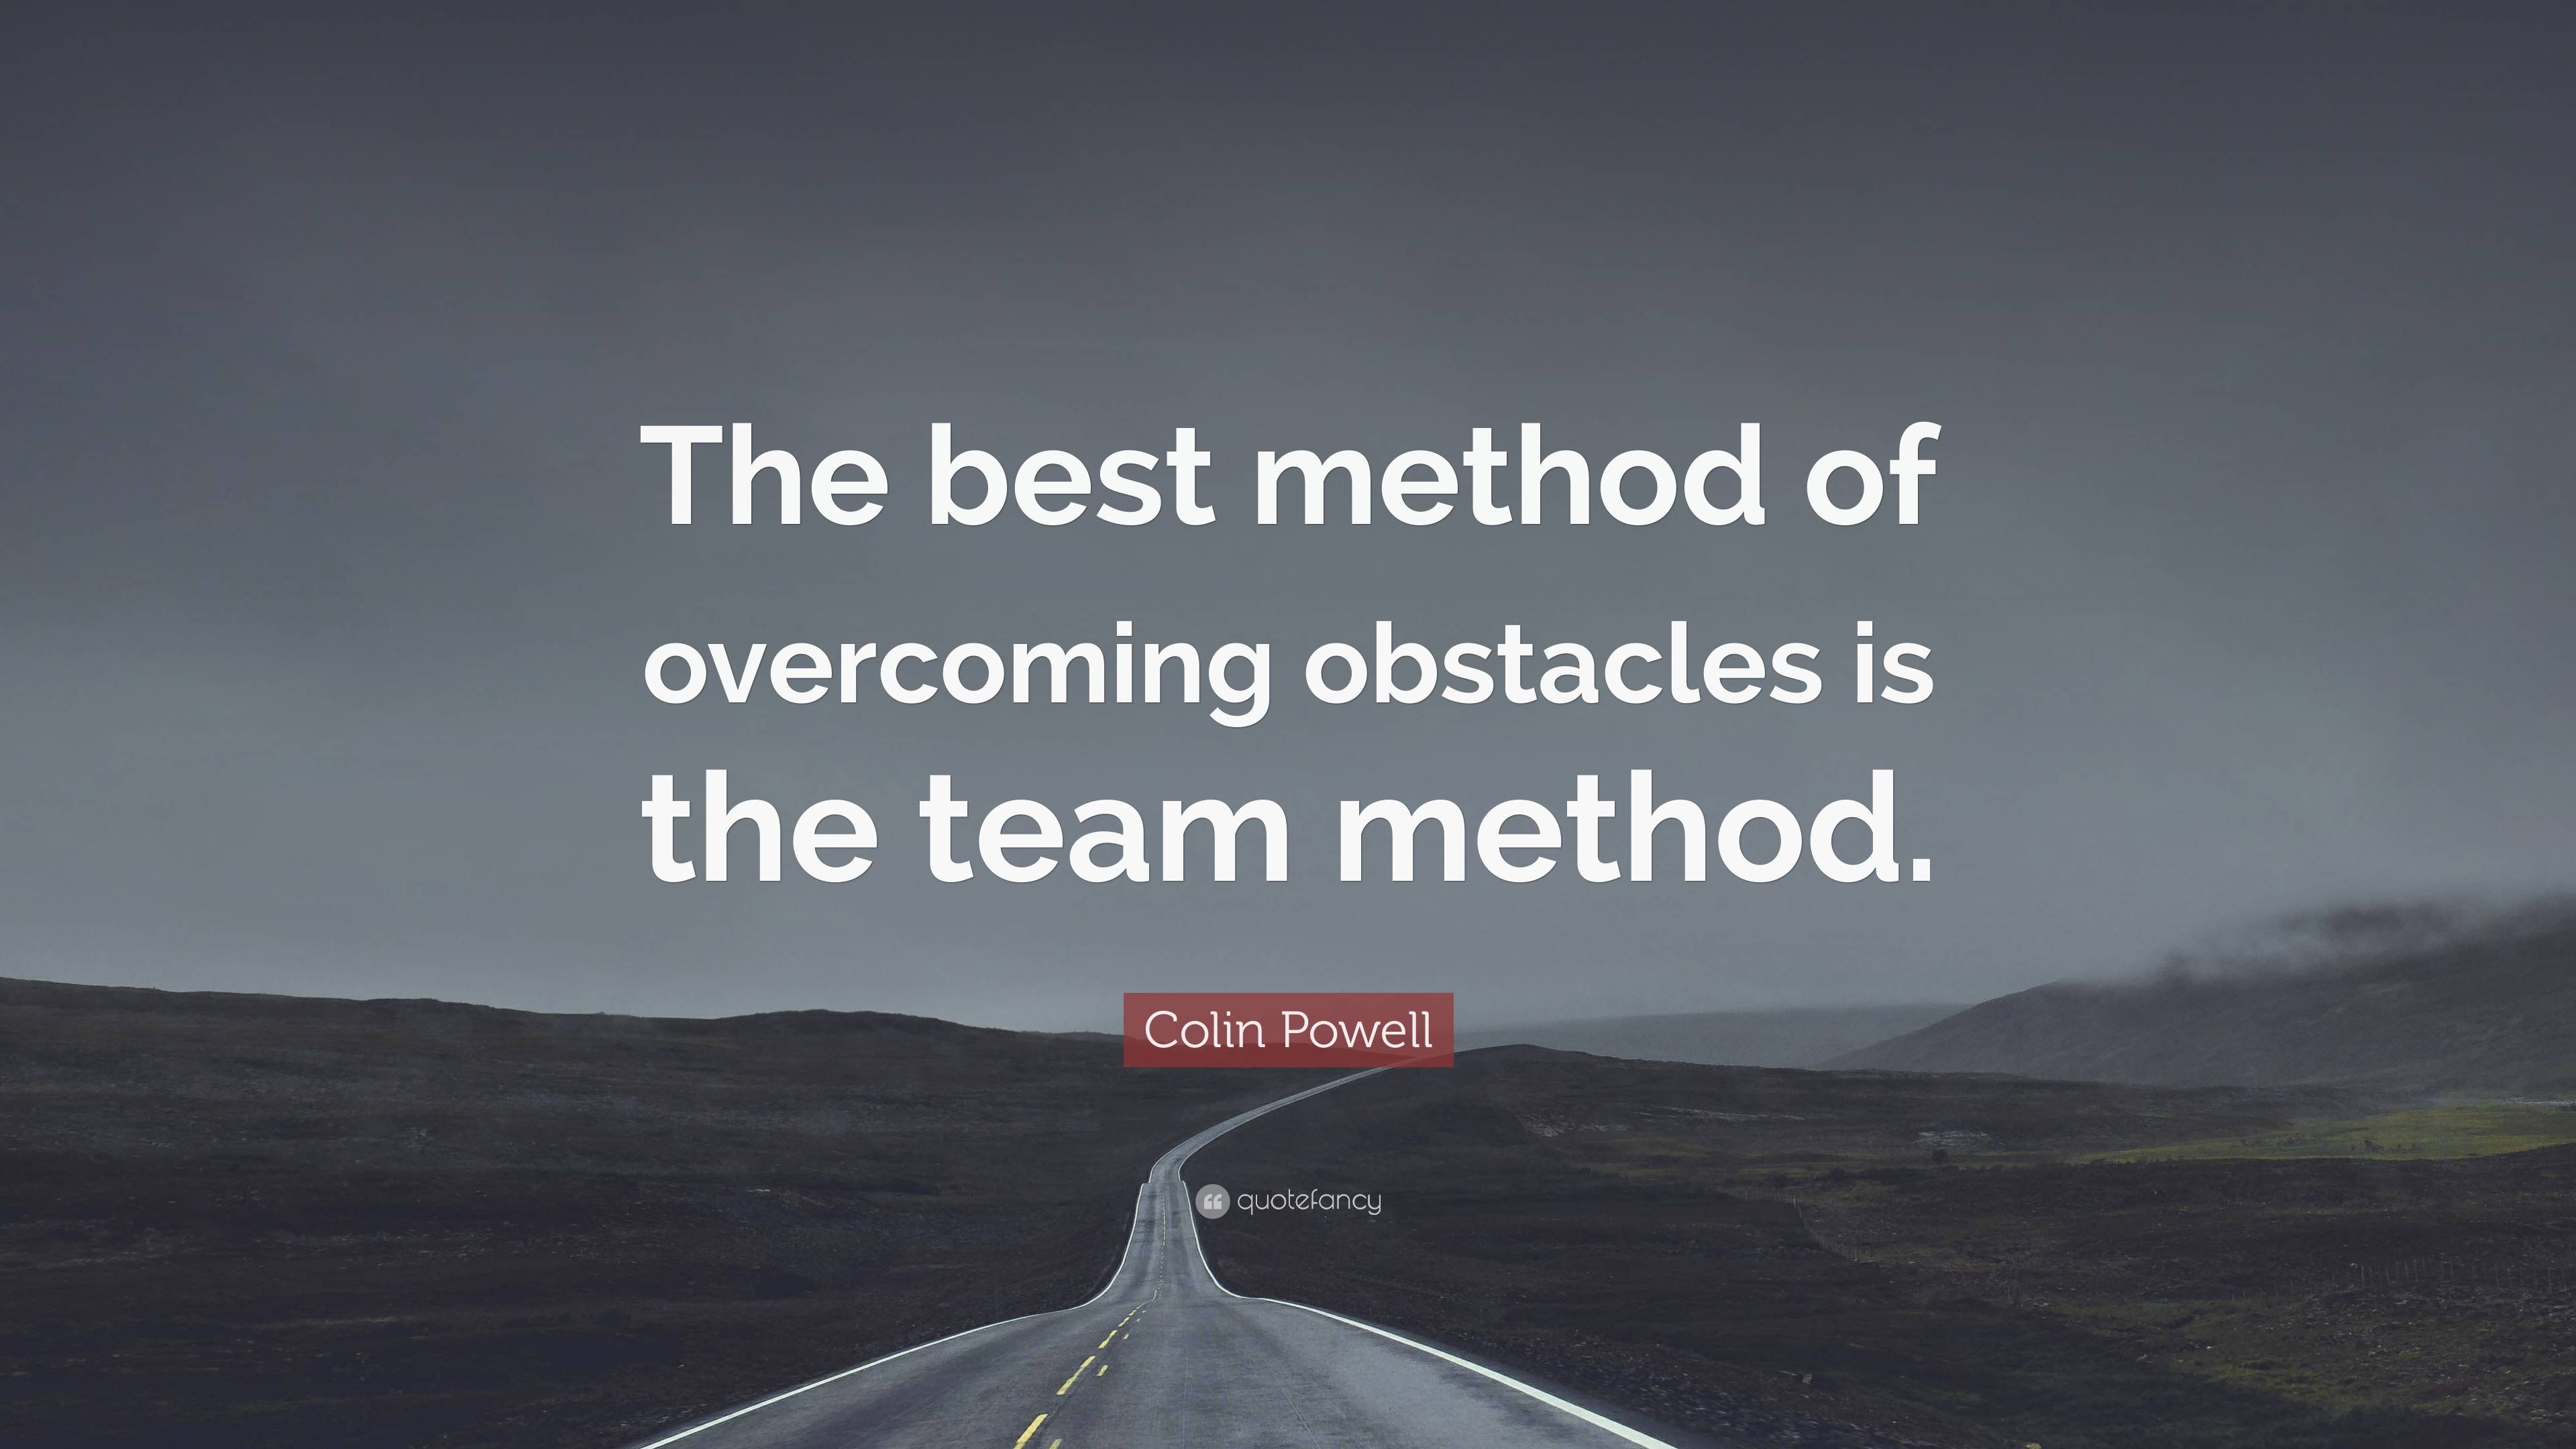 Colin Powell Quote The Best Method Of Overcoming Obstacles Is The